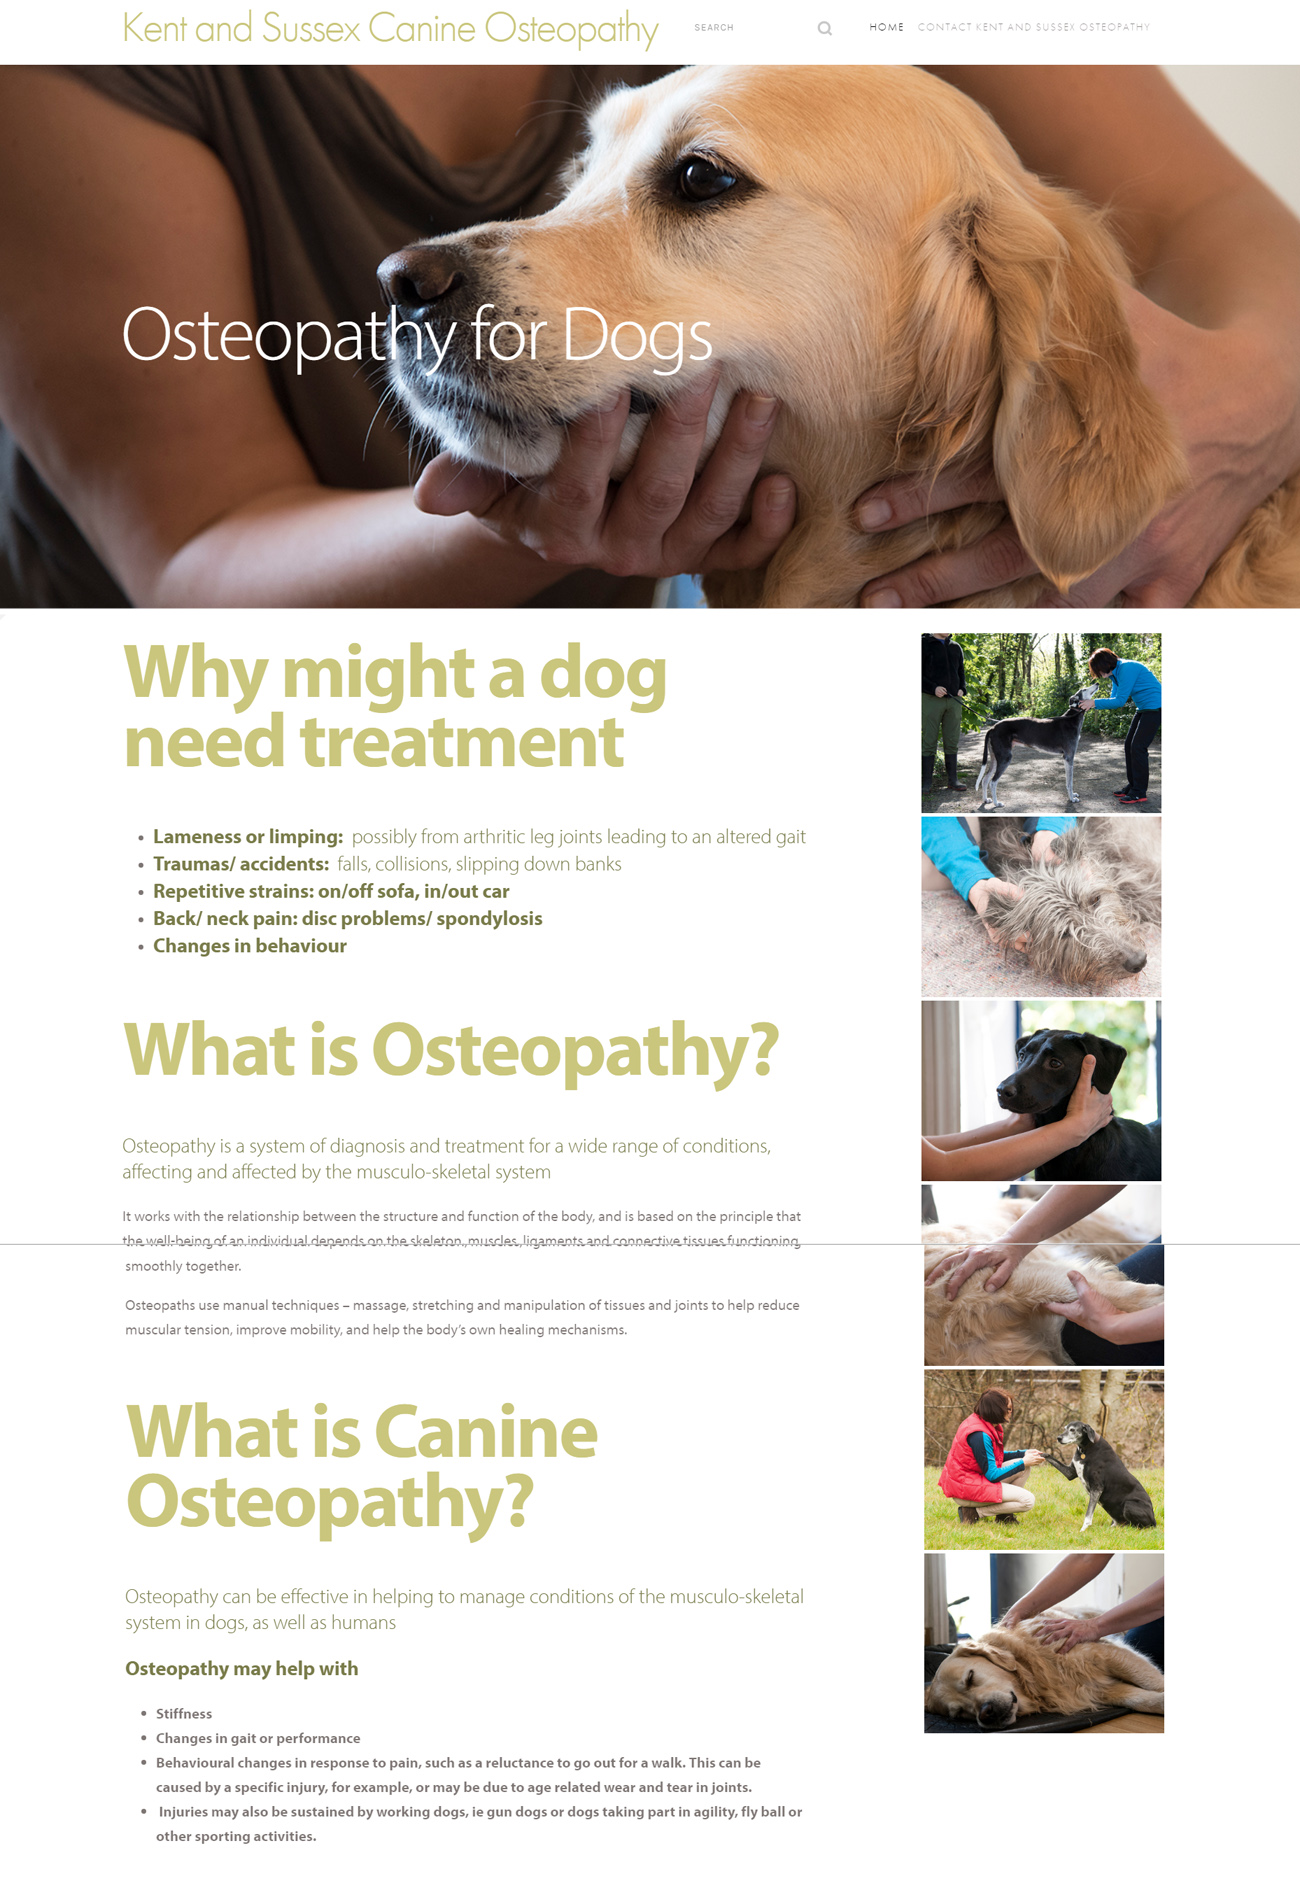 Kent and Sussex Canine Osteopathy Home Page Screenshot.jpg